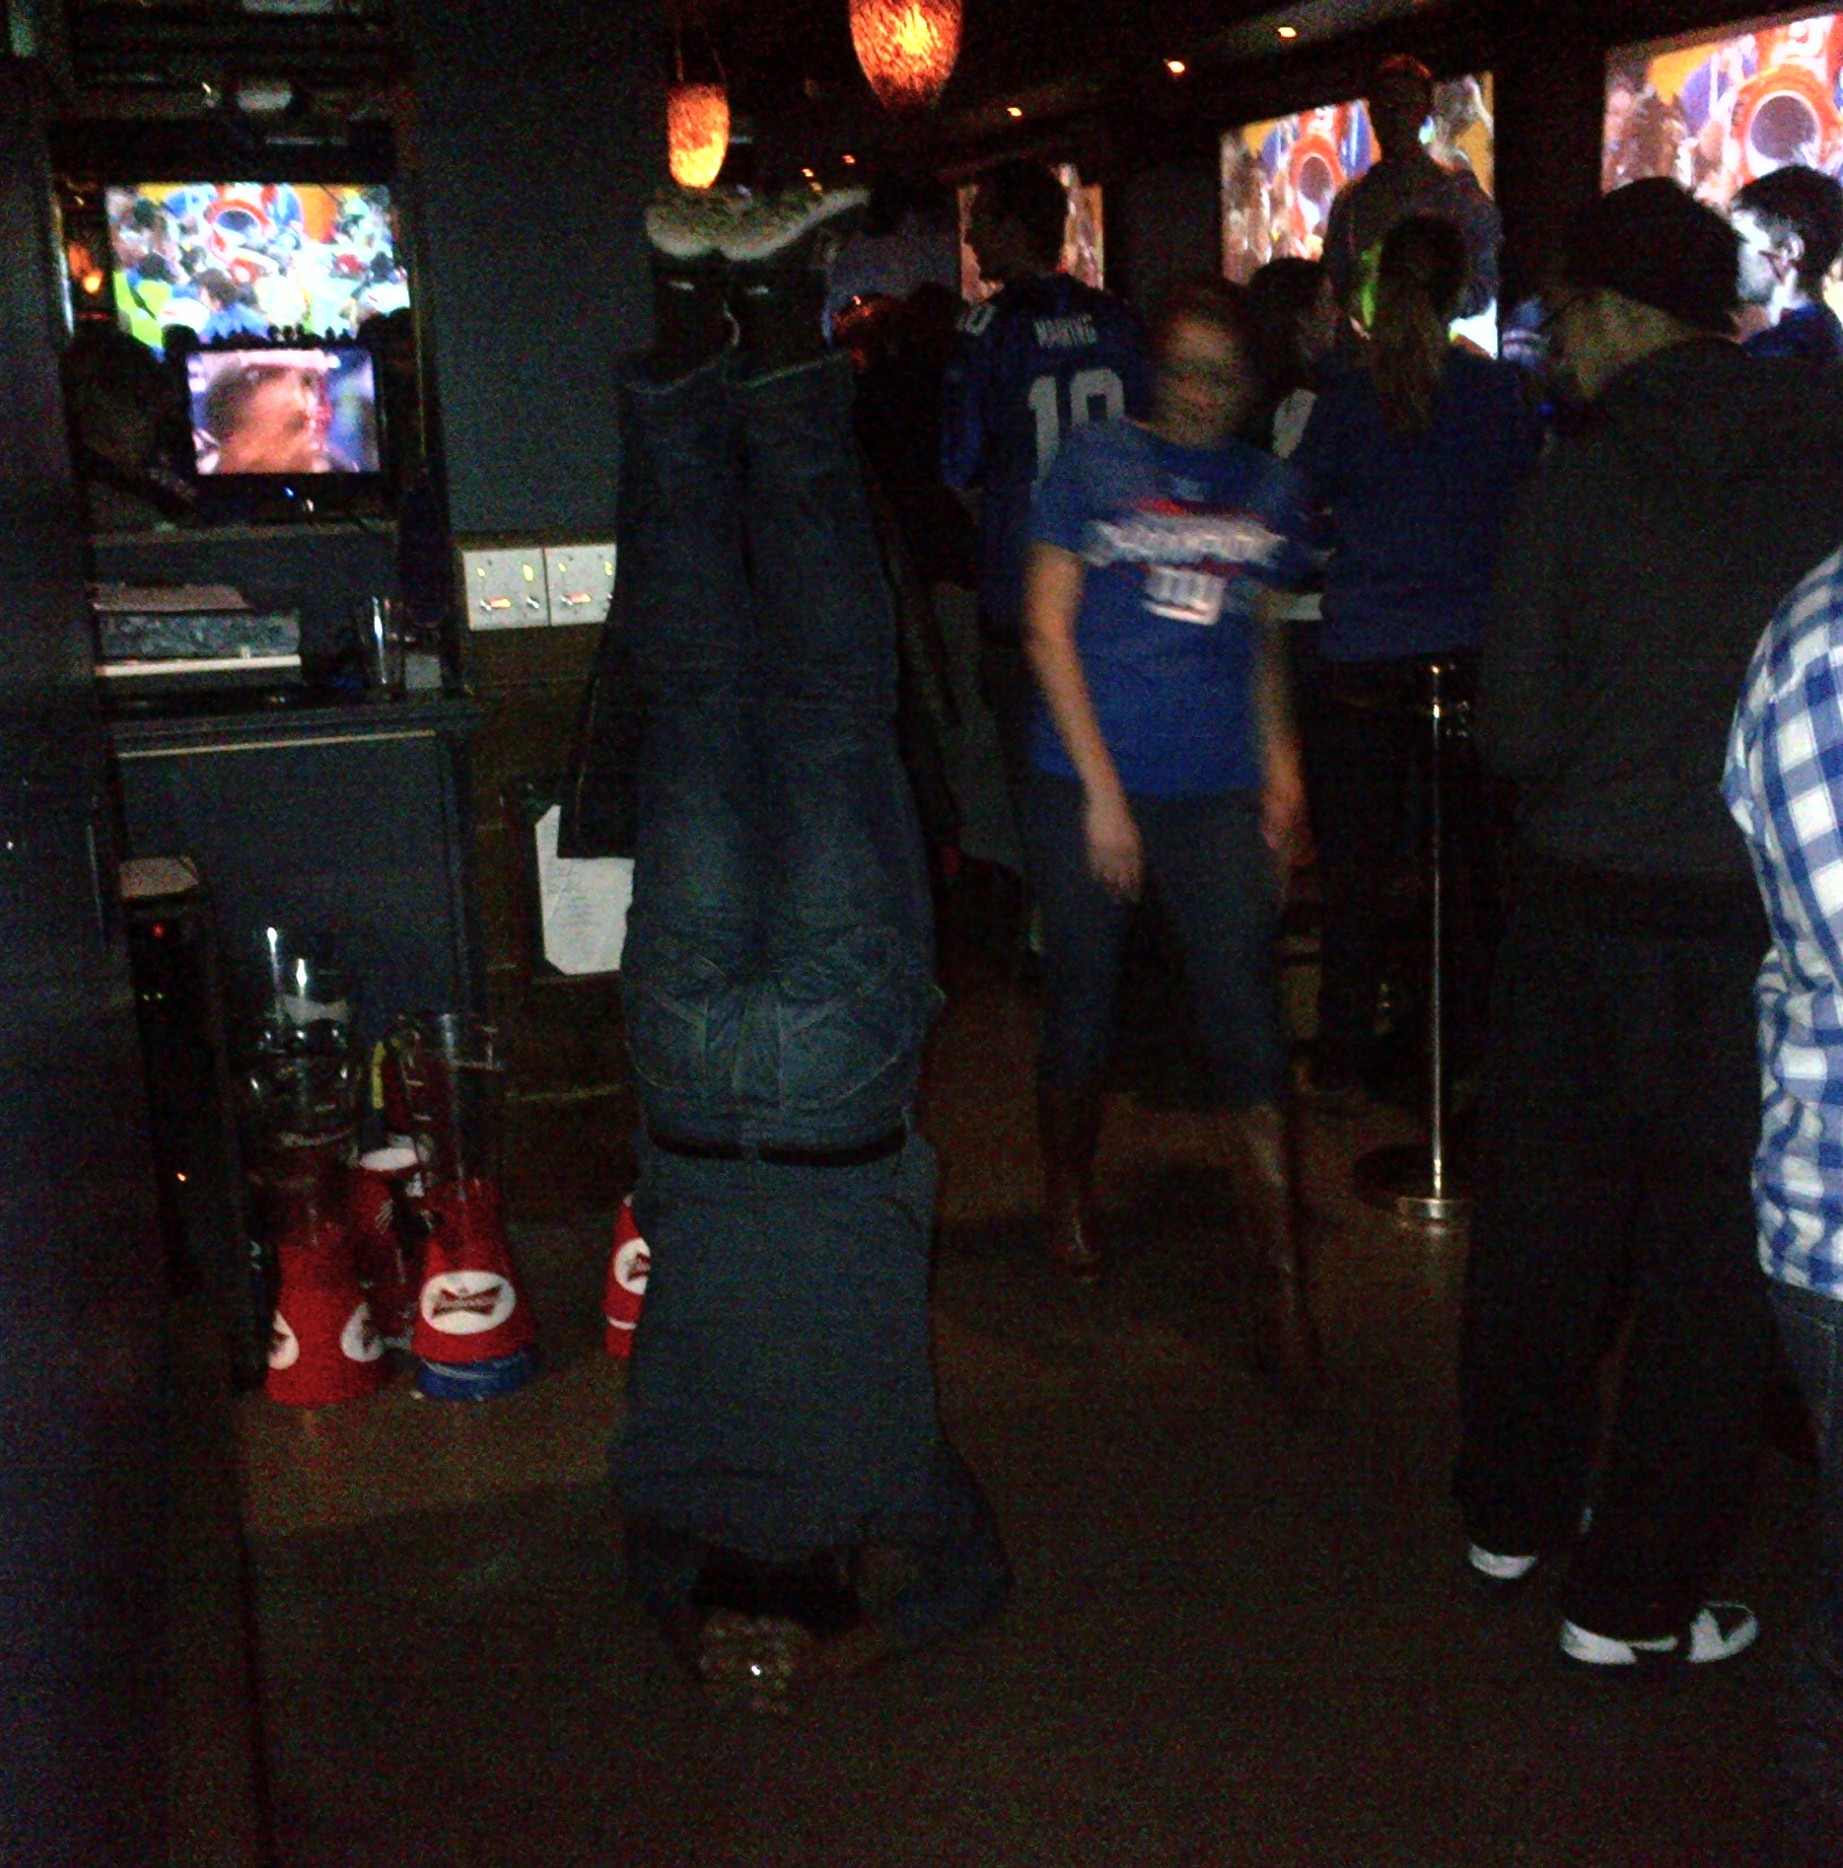 Headstand to celebrate the Giants Super Bowl Win